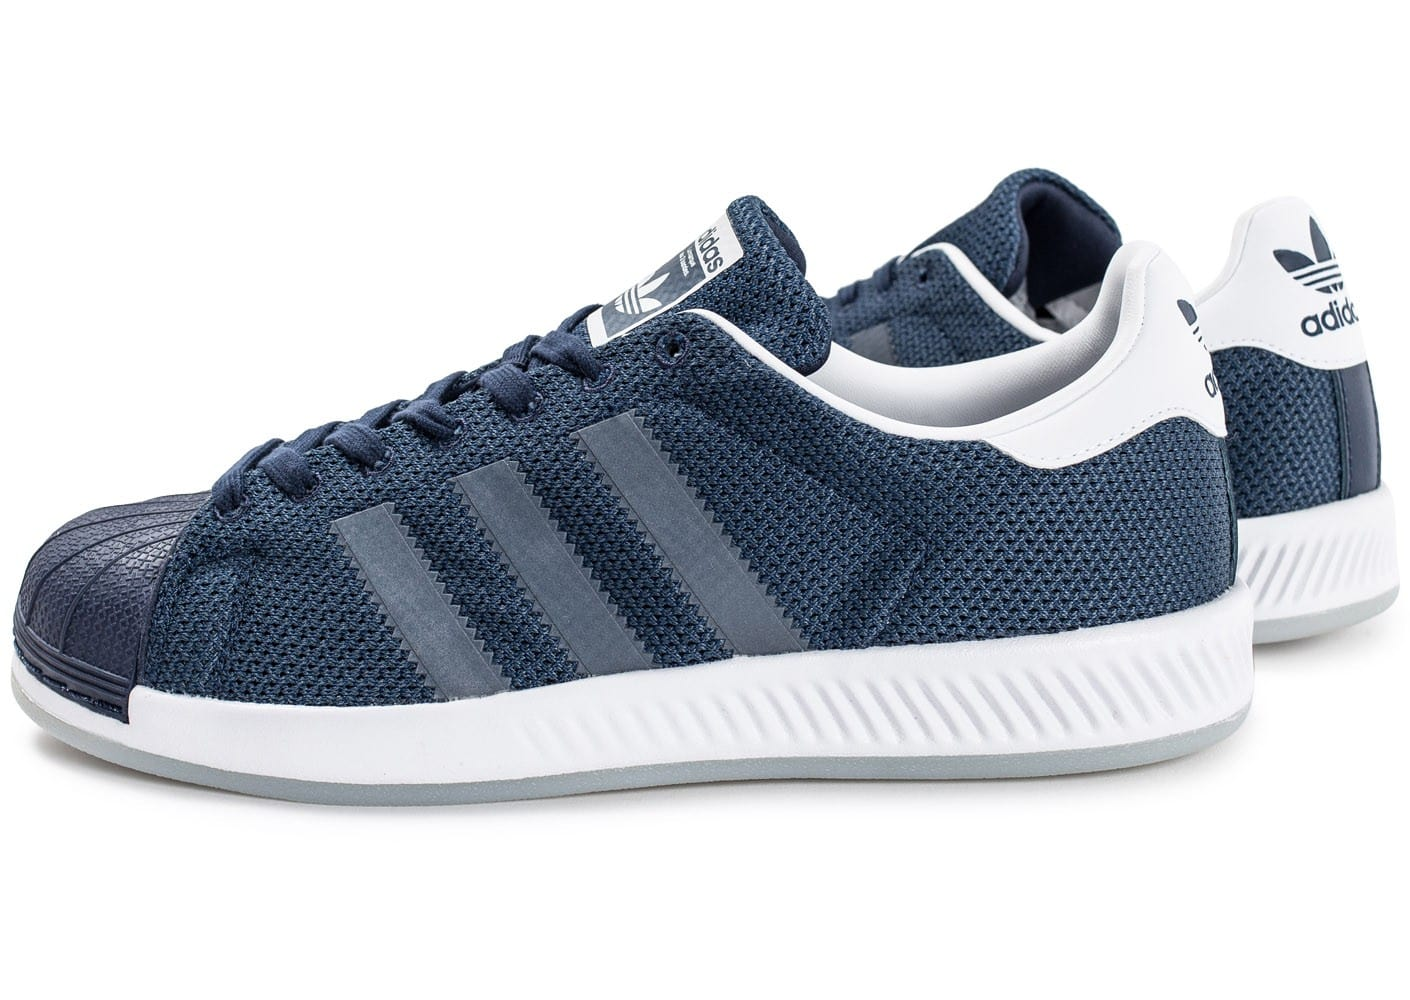 adidas Superstar Bounce bleu marine Chaussures Baskets